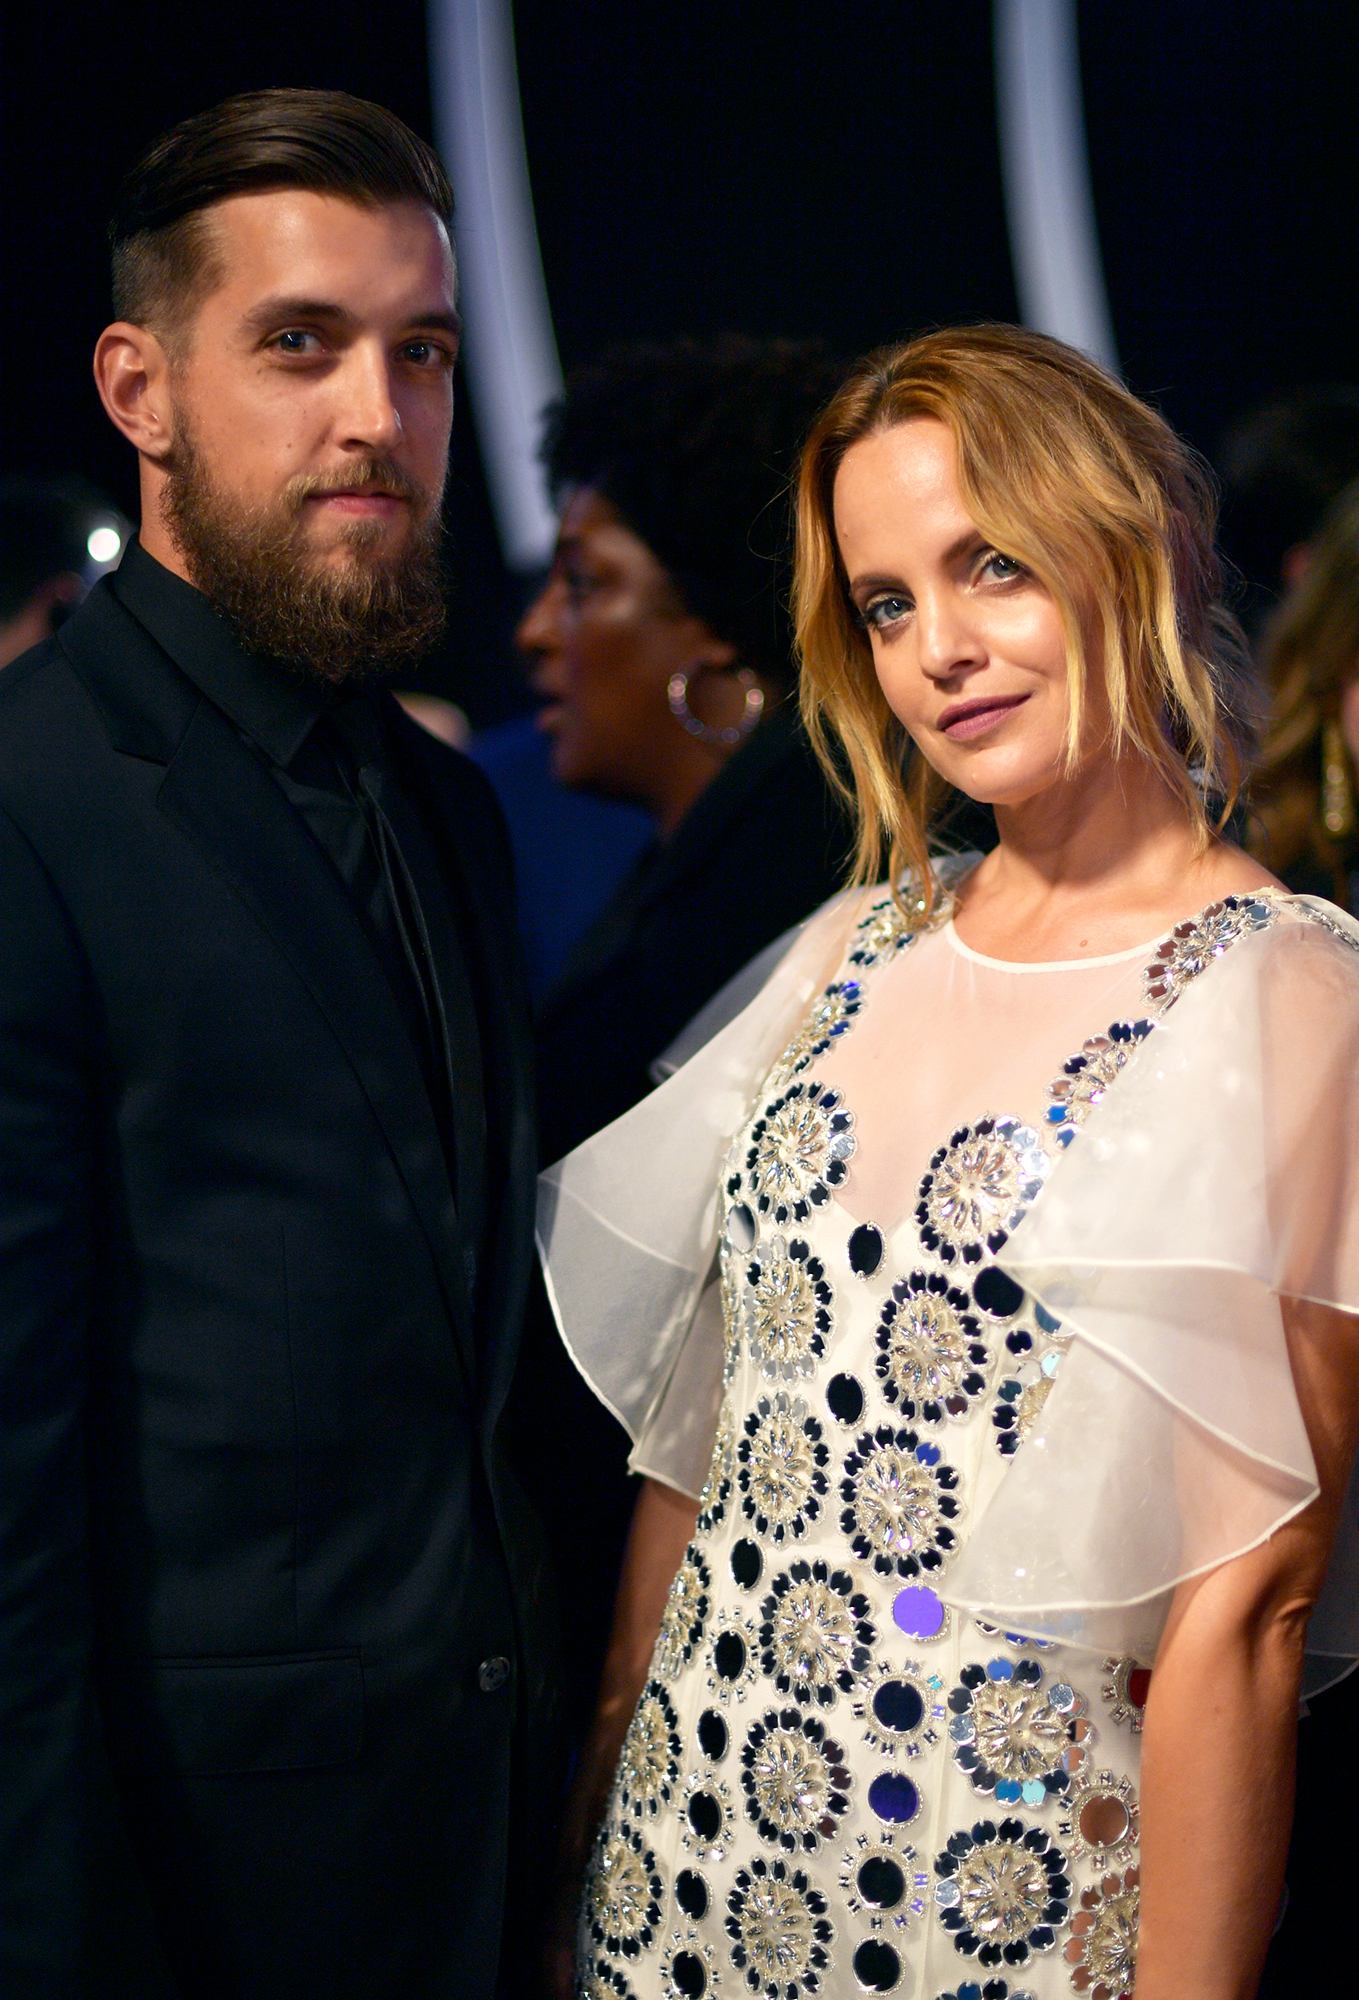 Mena Suvari Confirms She Secretly Married Michael Hope: 'Third Time's a Charm!' - Mena Suvari and Michael Hope attend the 2017 MTV Video Music Awards at The Forum on August 27, 2017 in Inglewood, California.